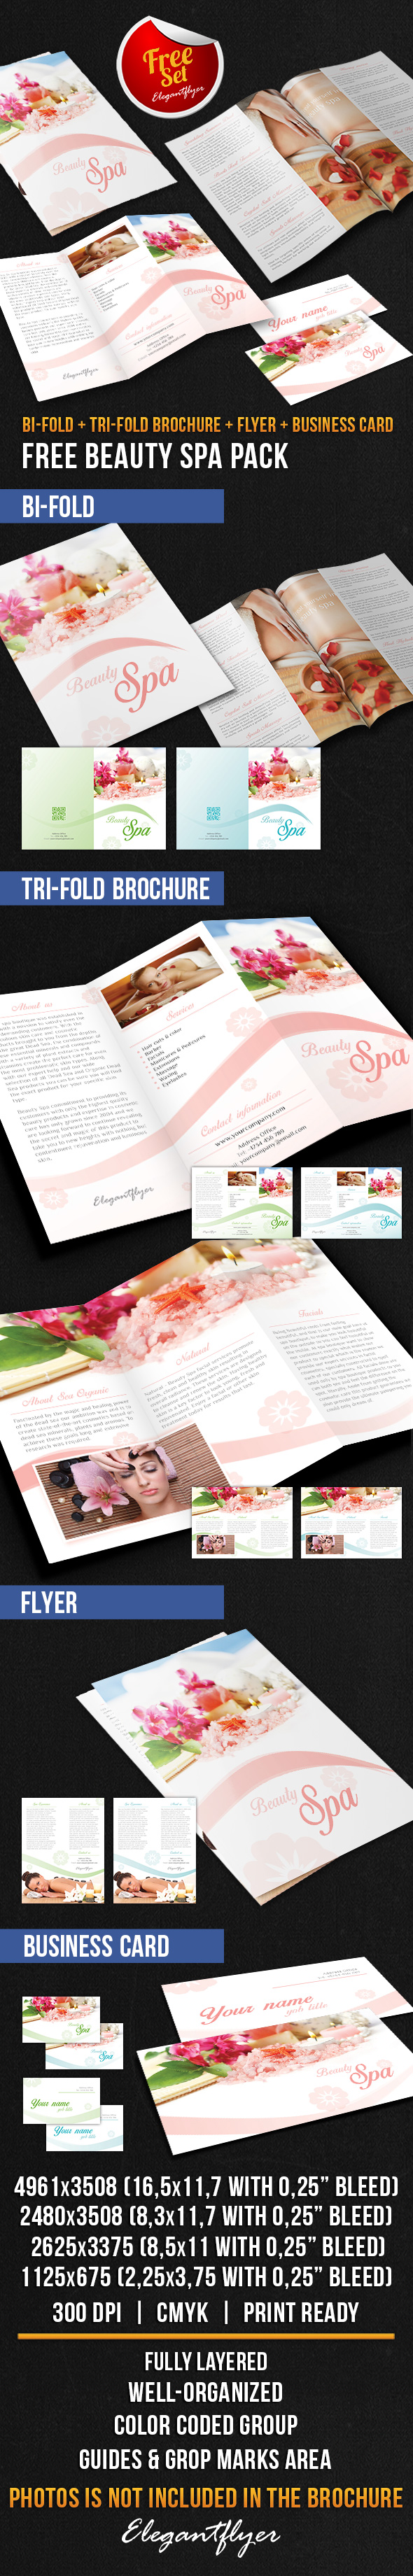 Bigpreview_beauty-spa-brochure-pack-free-psd-template